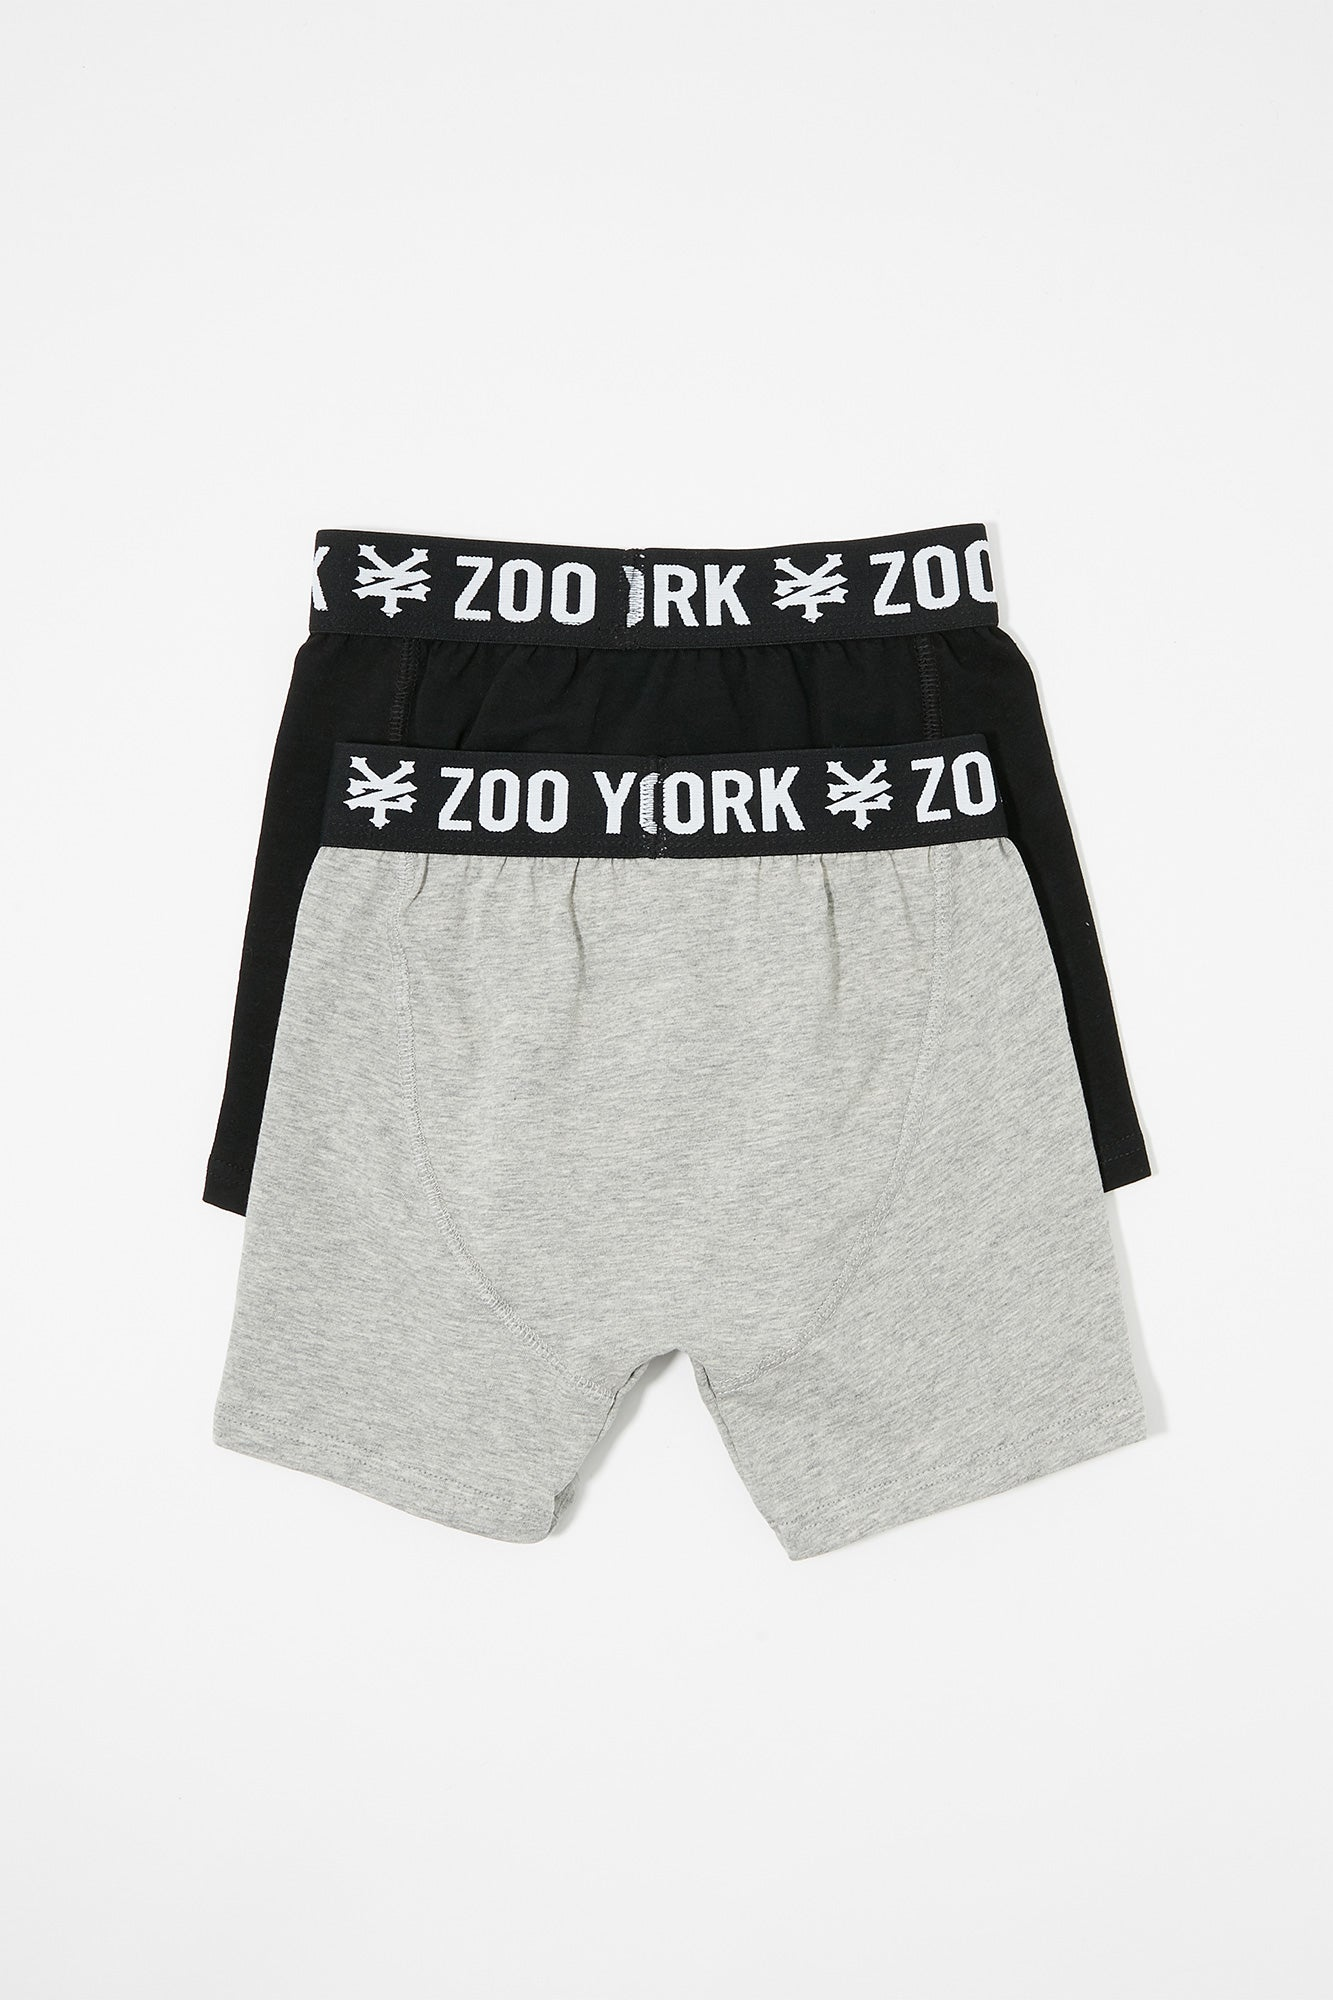 Zoo York Mens Cotton Boxer Briefs (2-Pack)